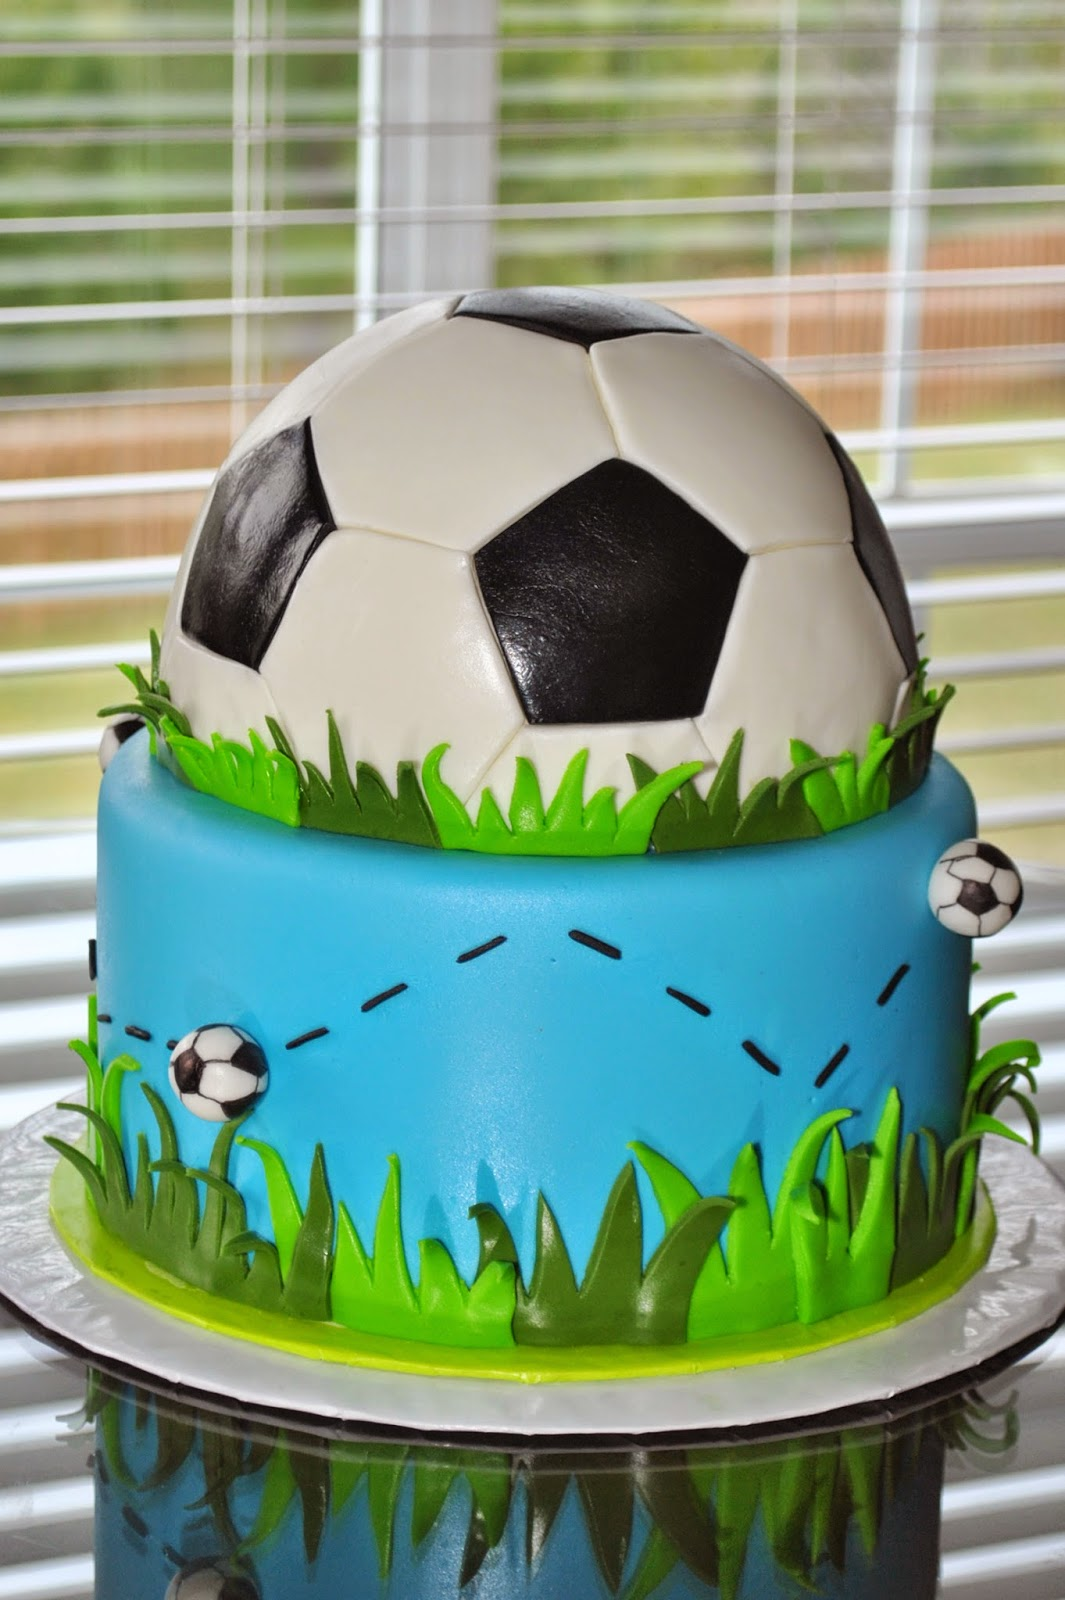 Hope S Sweet Cakes Sports Cakes